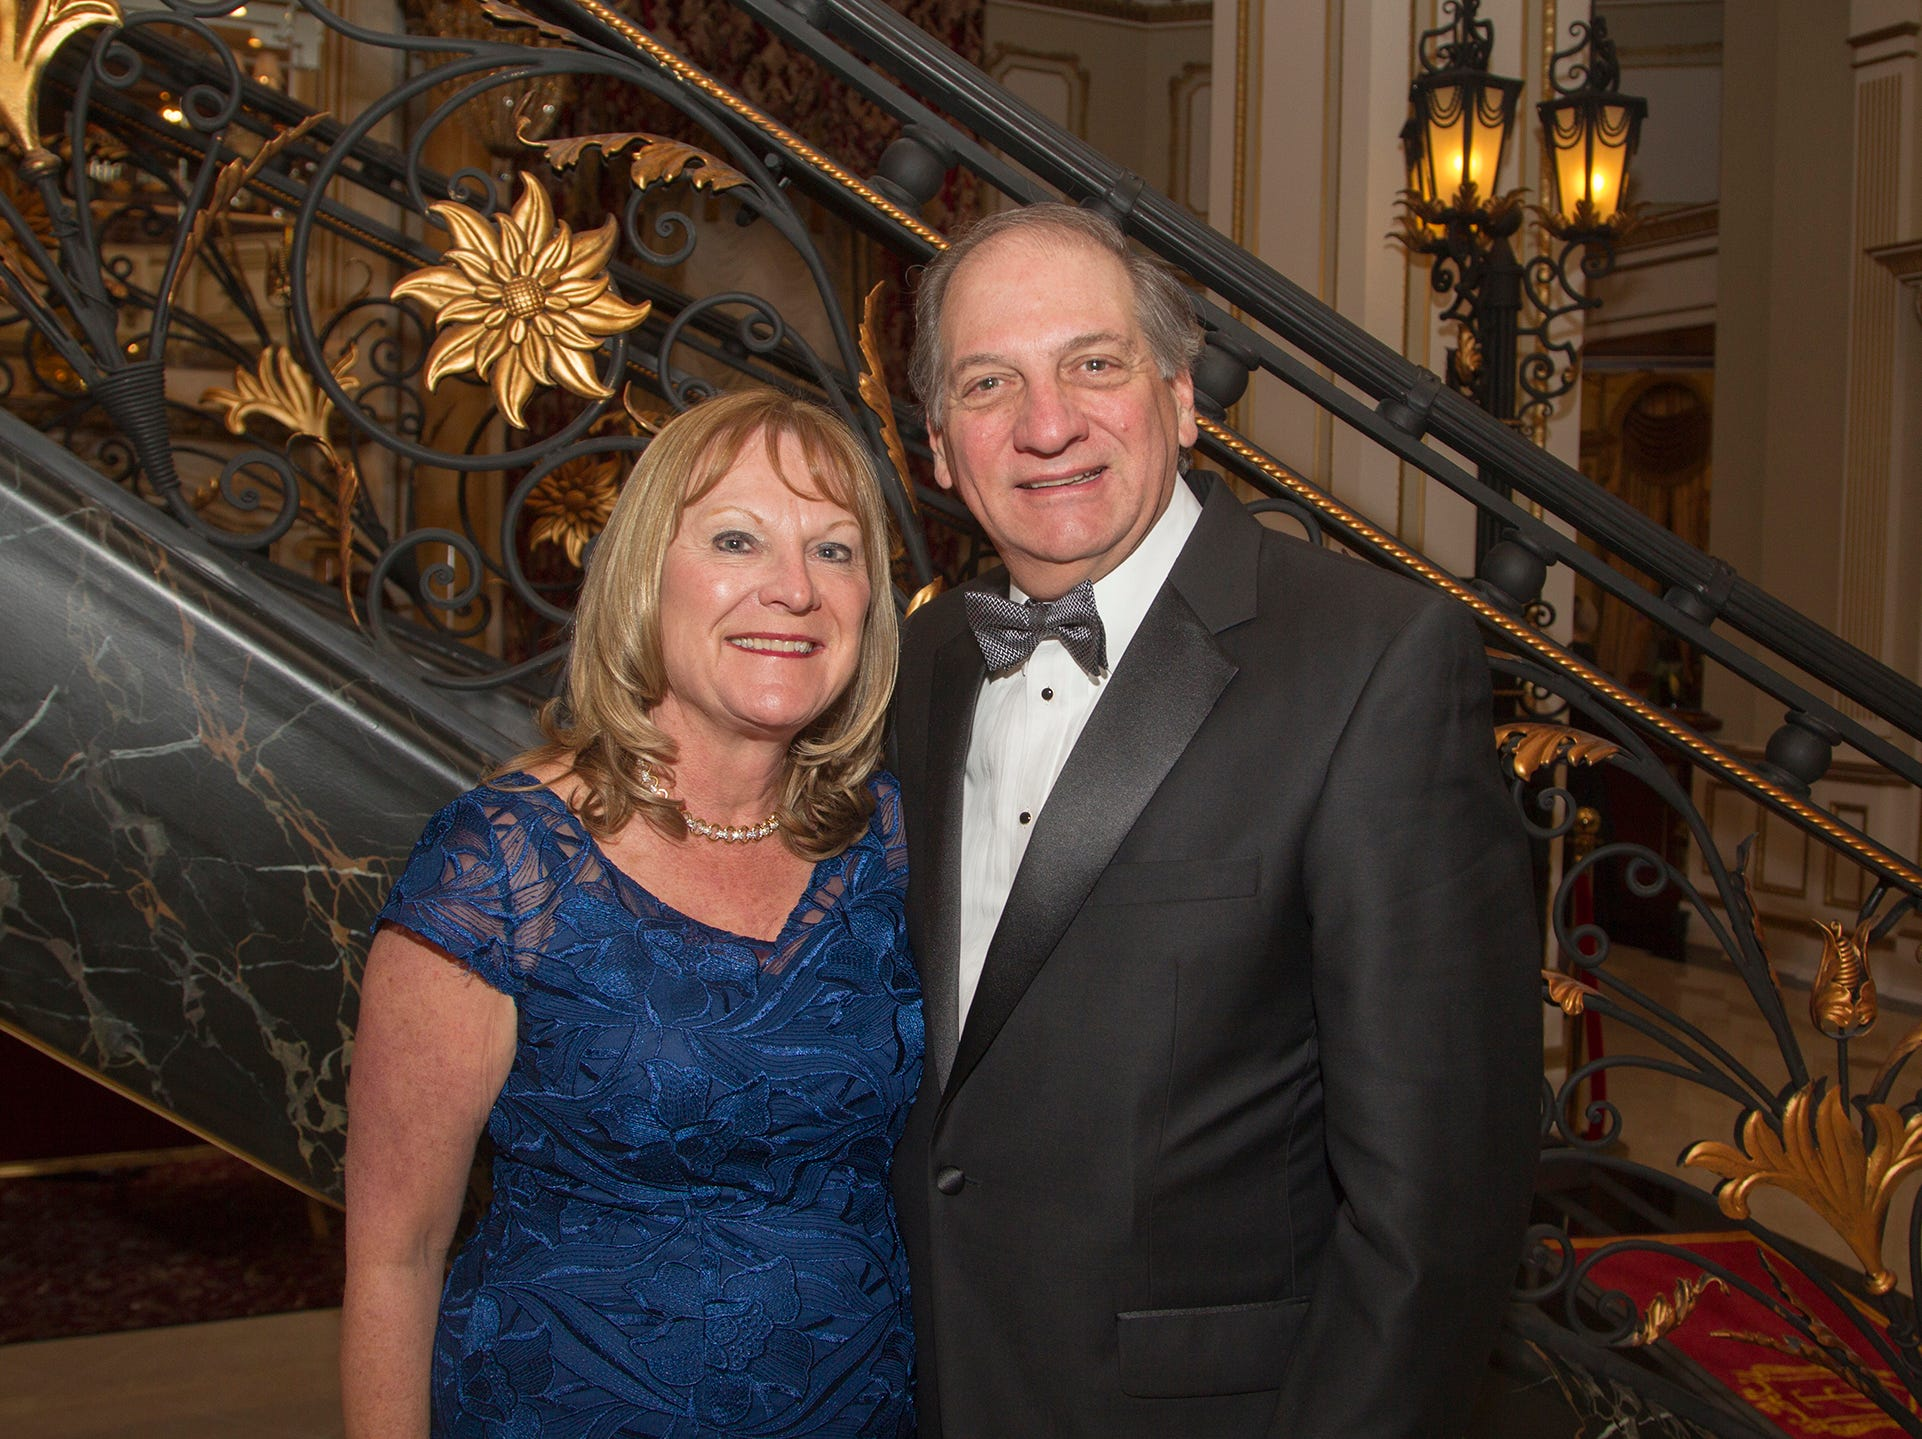 Eve and Jeefrey Tucker. The 72nd Annual Valley Ball gala at The Legacy Castle in Pompton Plains. 11/16/2018